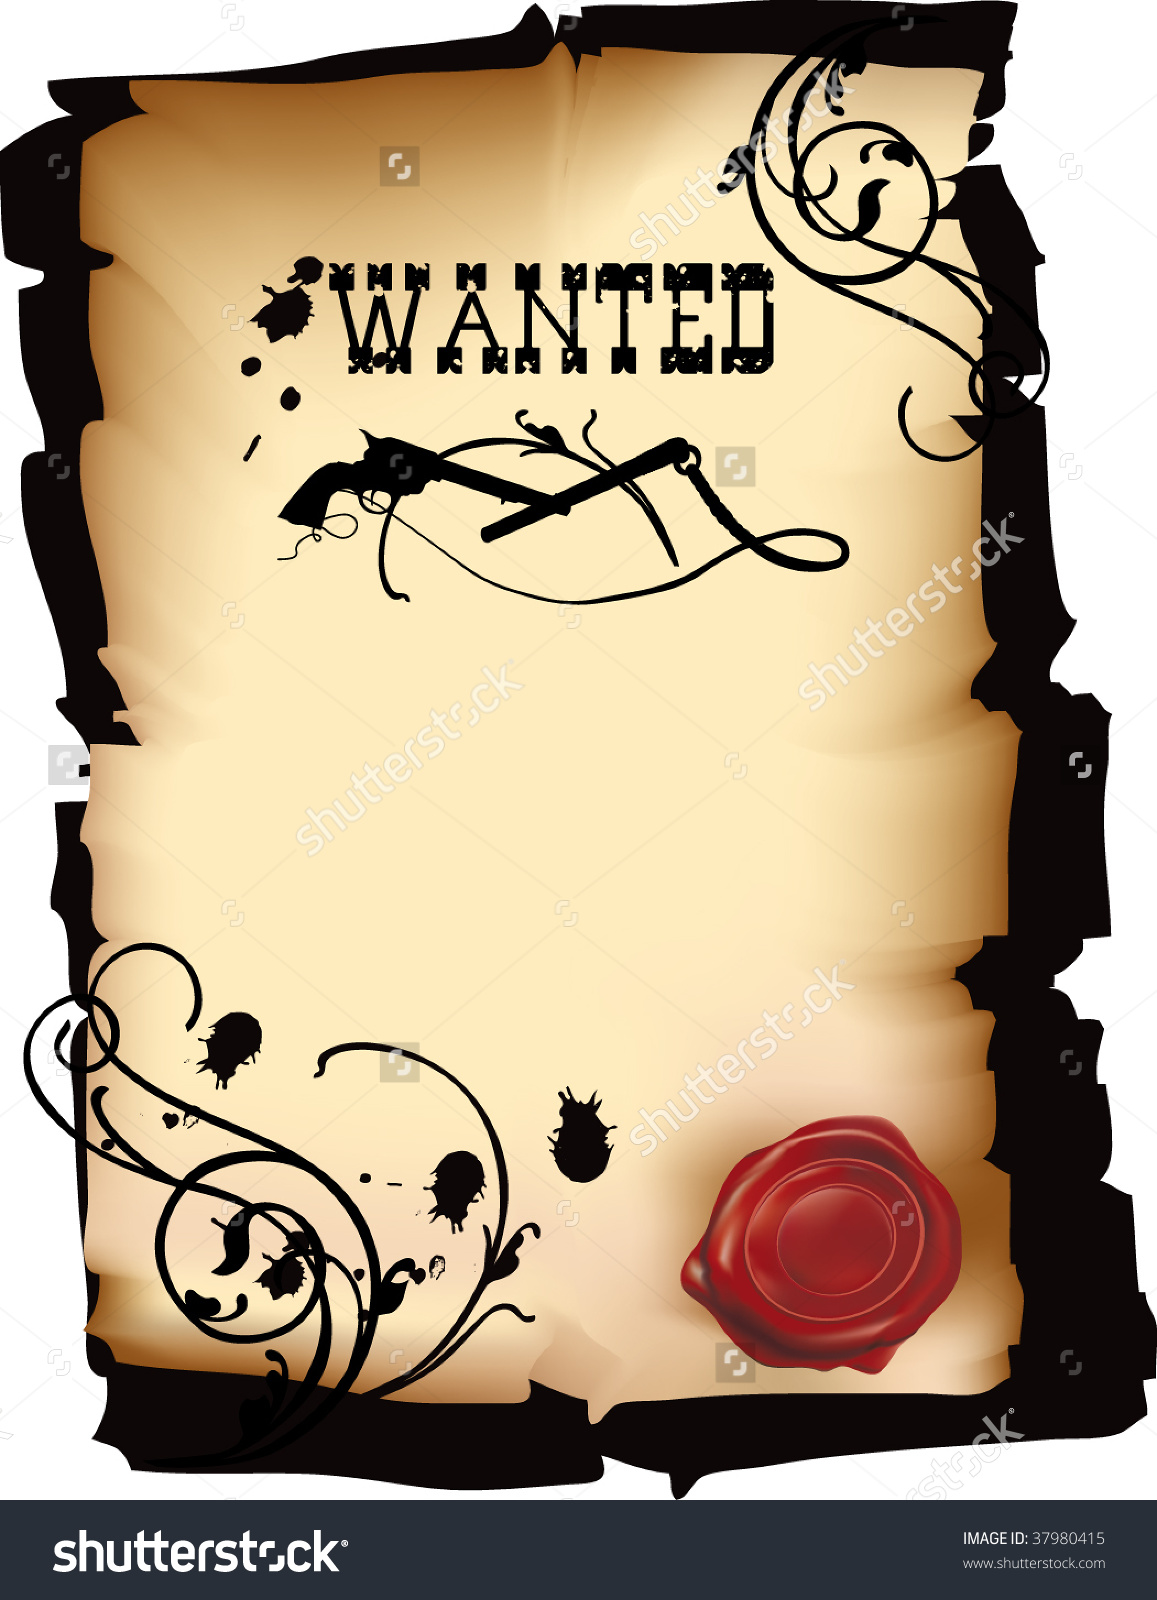 Wild West Wanted Poster Vector Format Stock Vector 37980415.